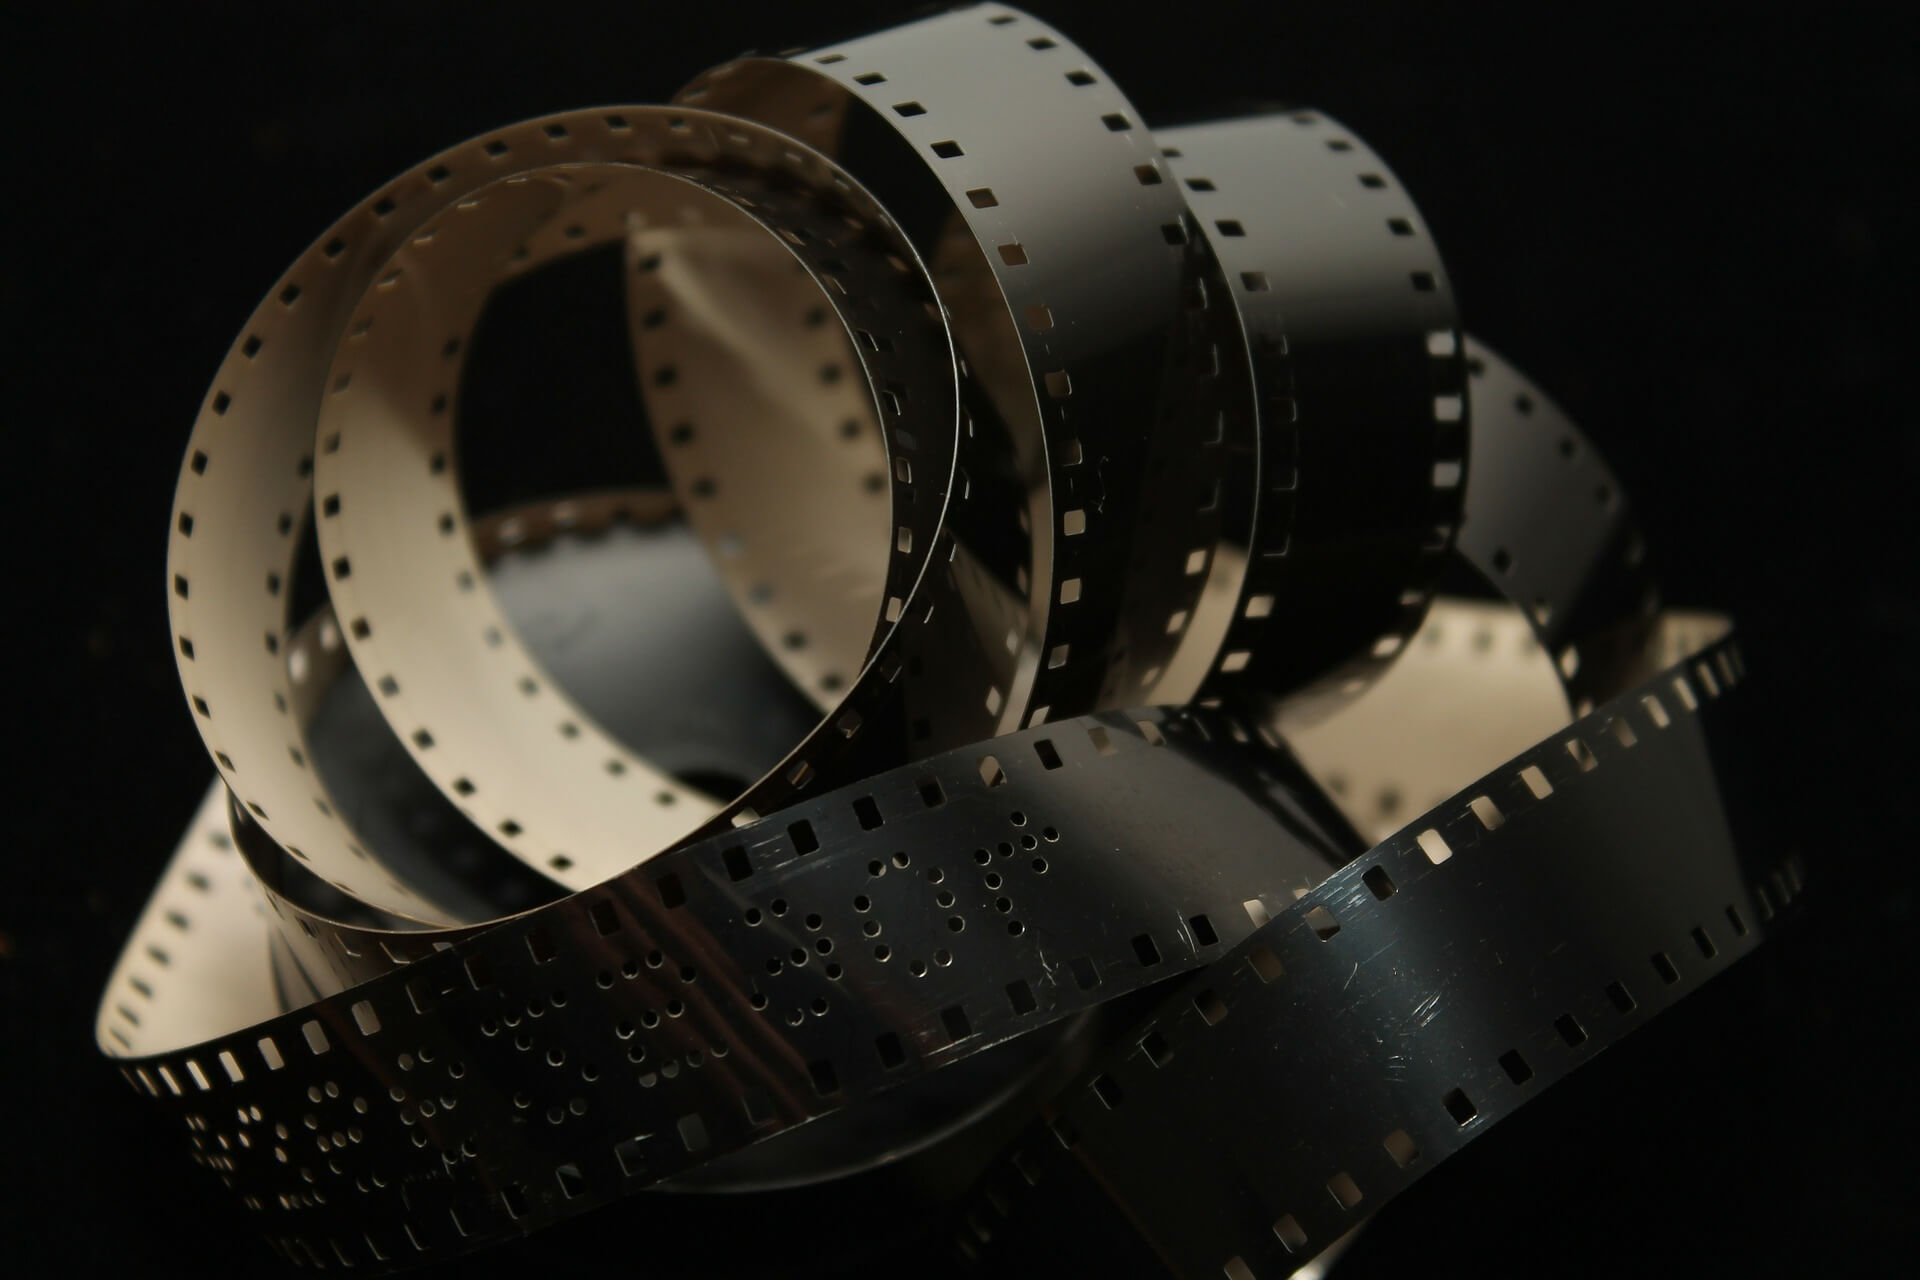 Unspooled roll of 35mm film